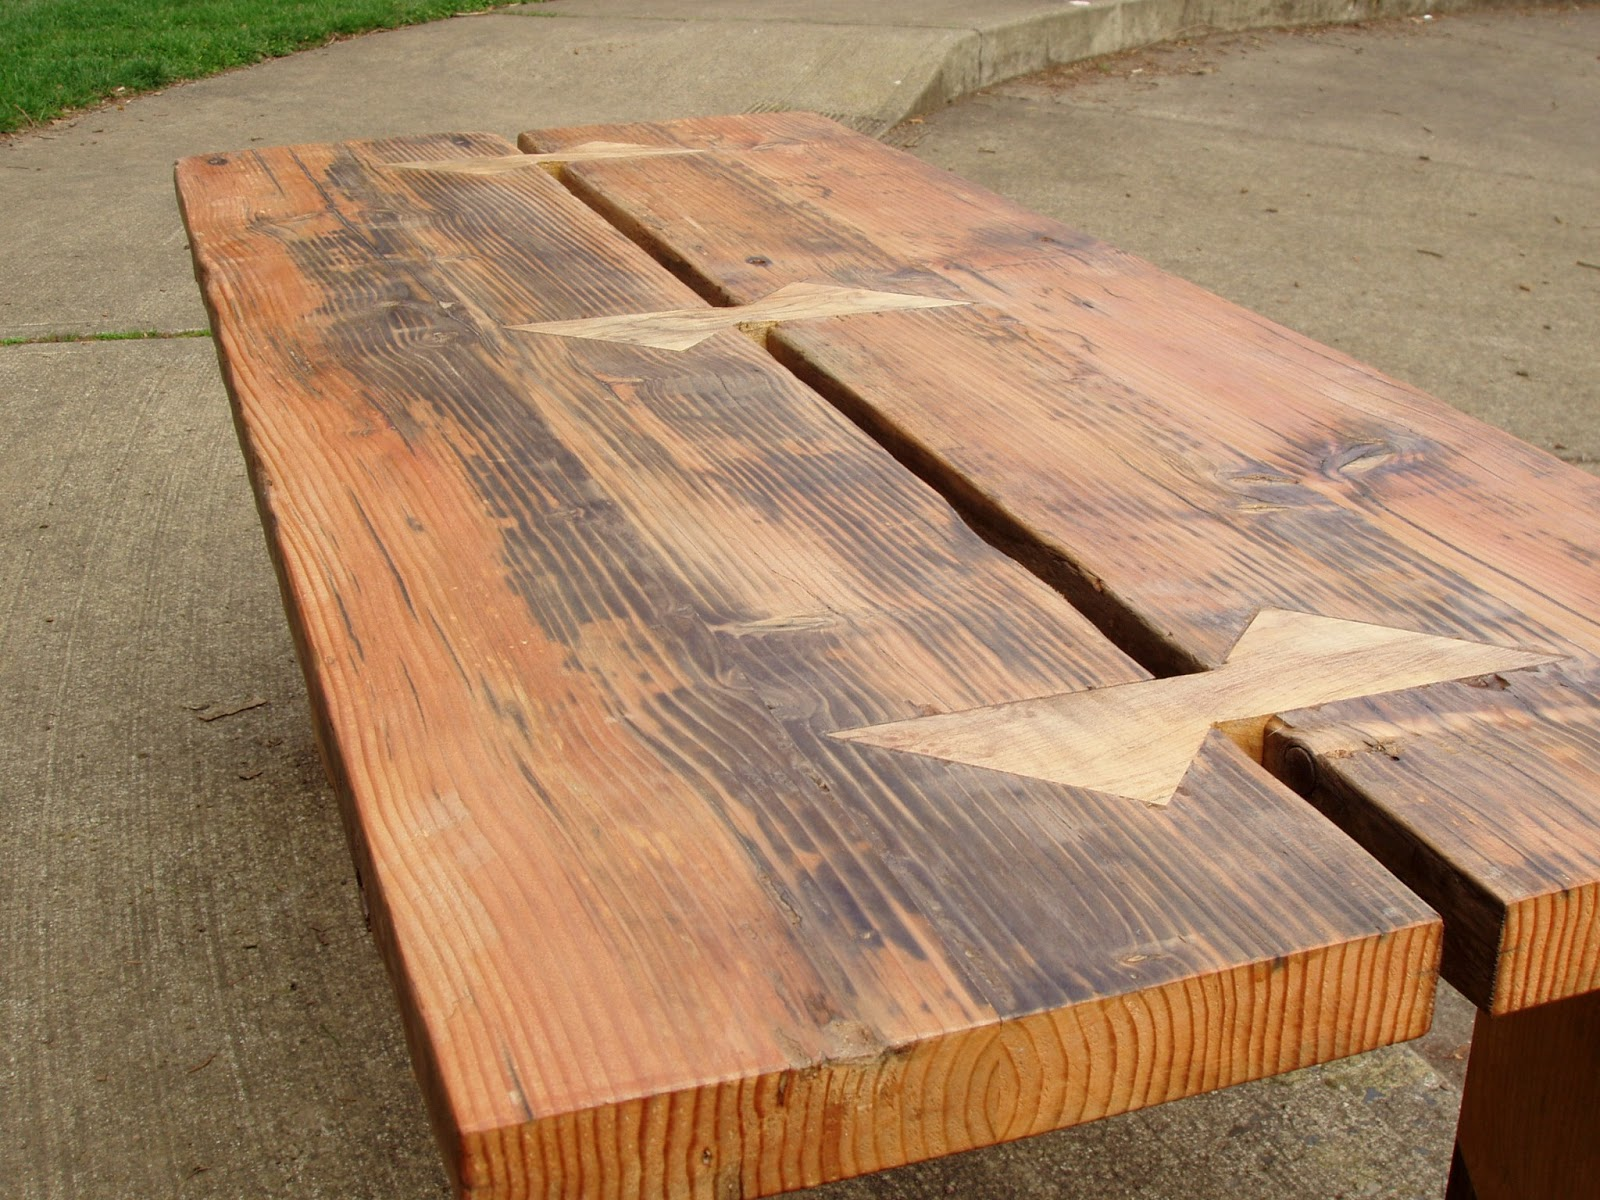 Driftedge woodworking reclaimed wood furniture for Recycled hardwood